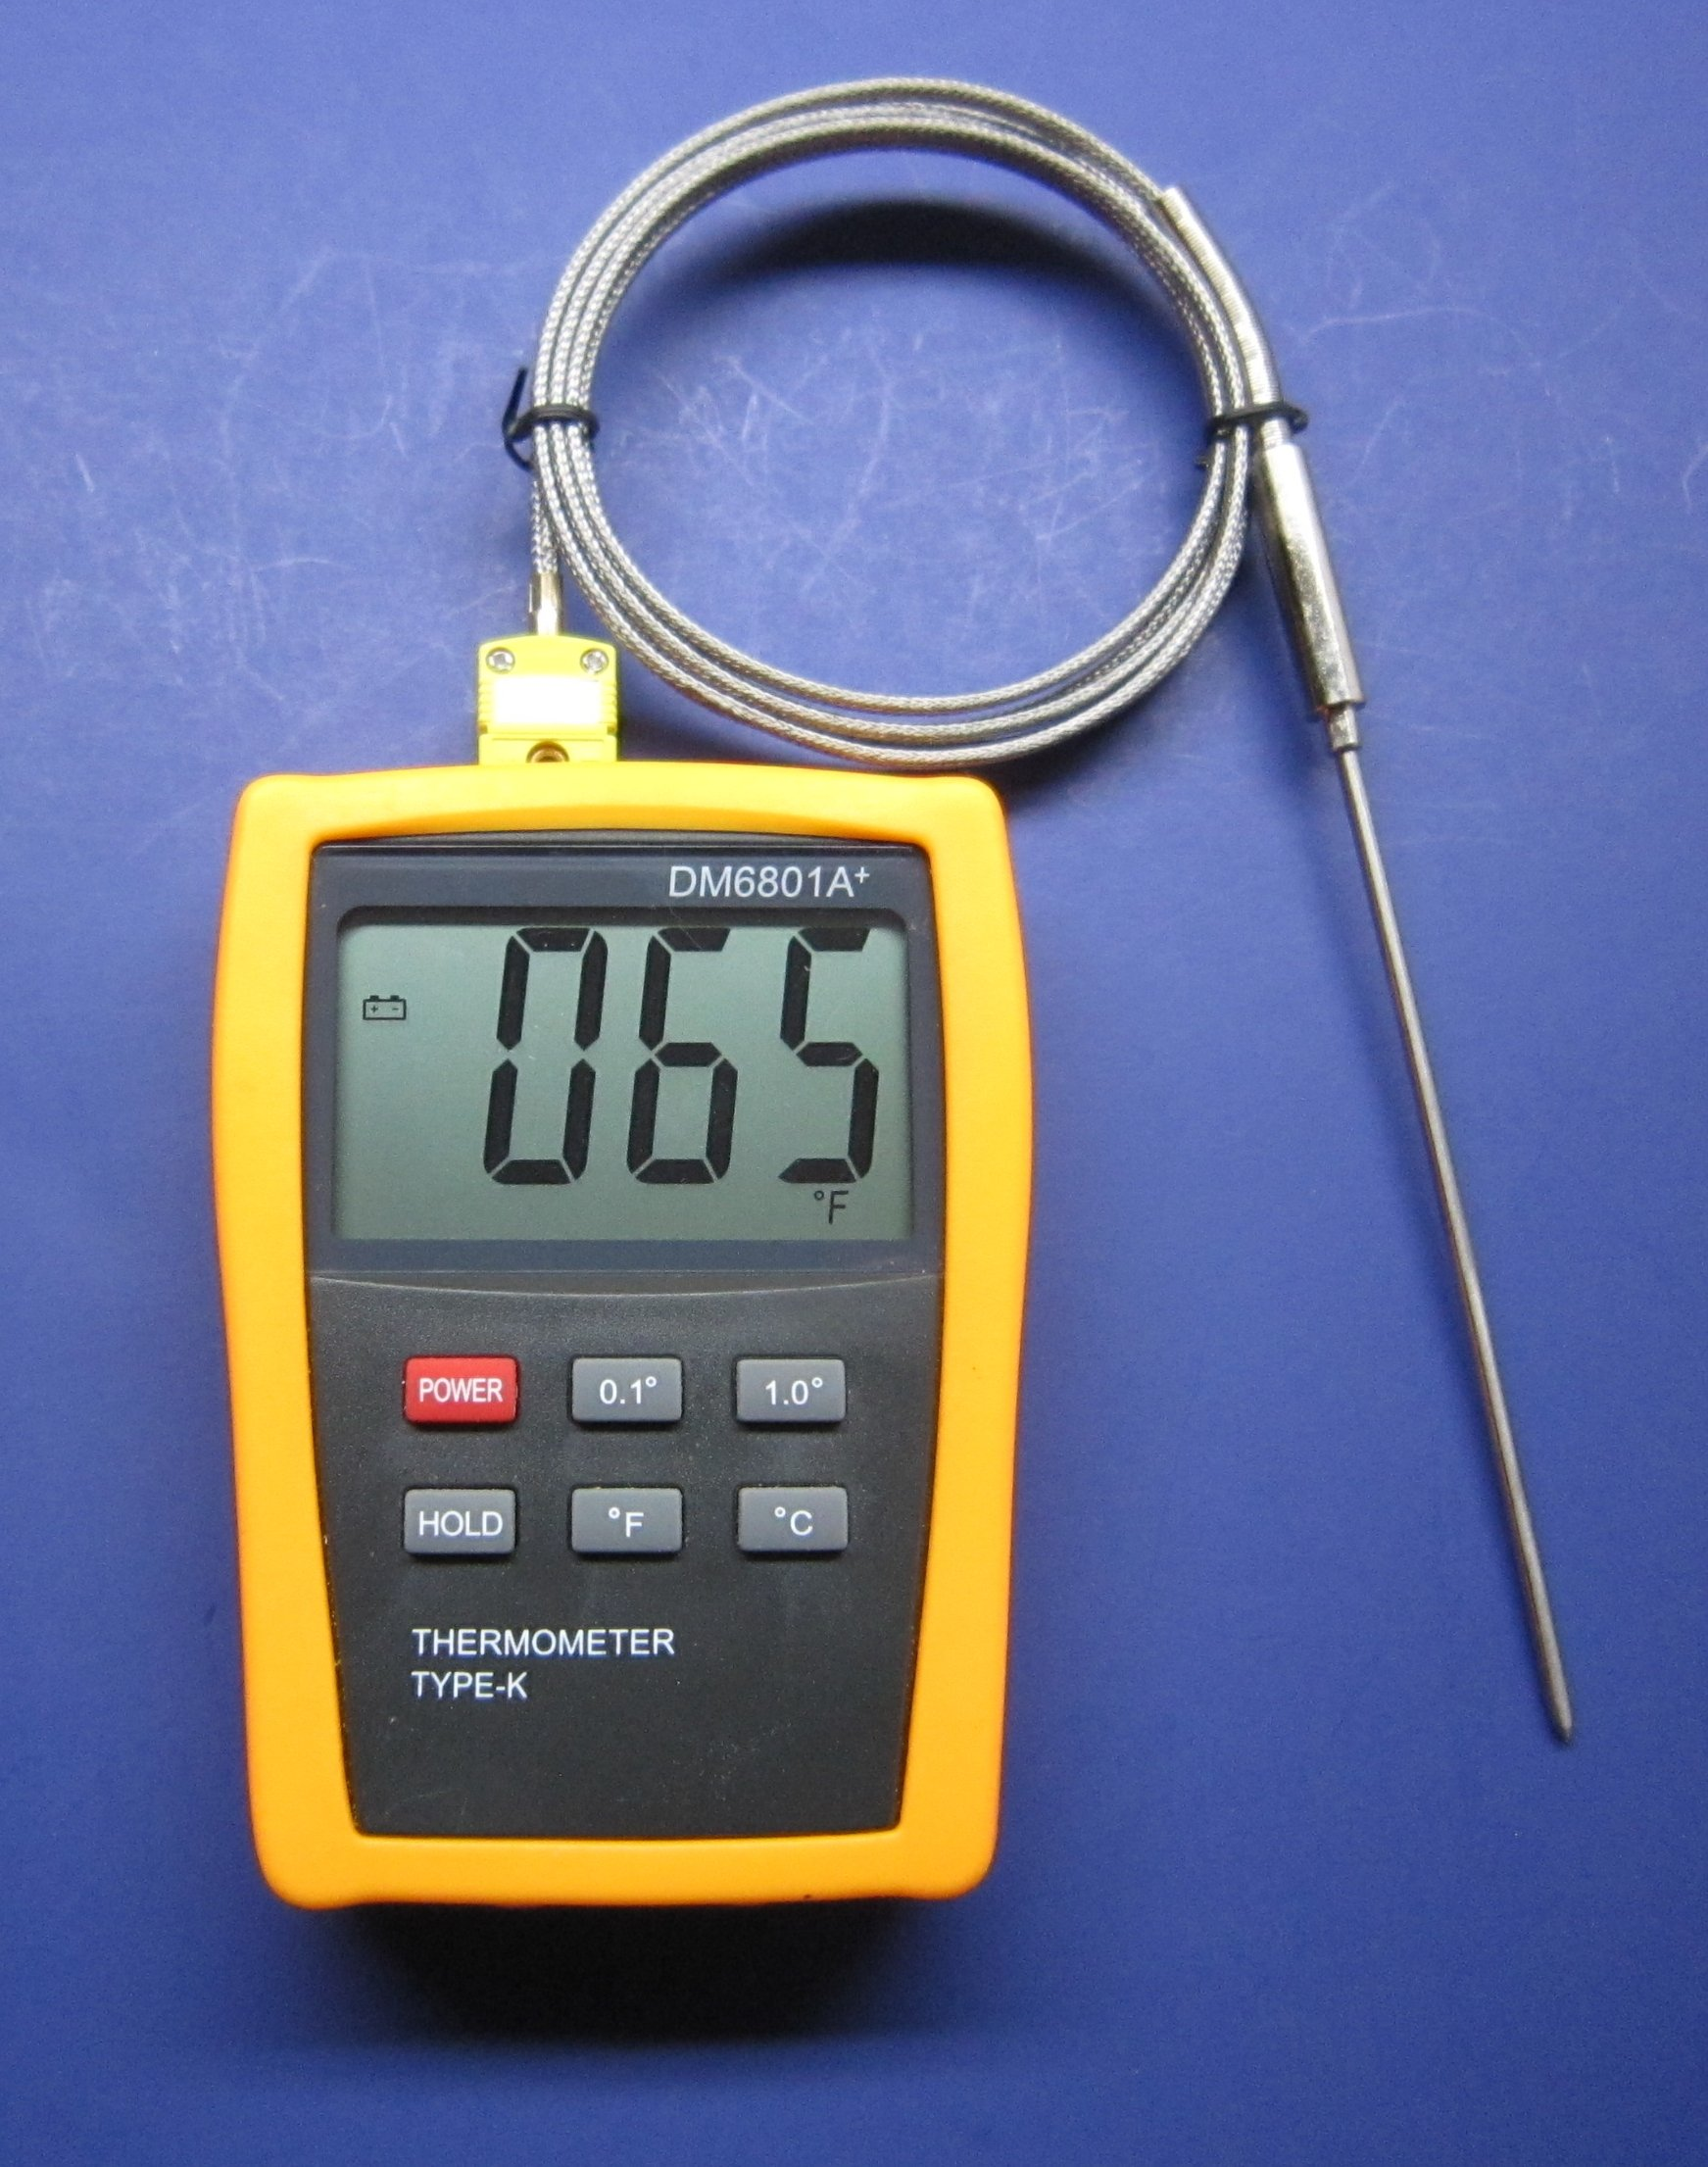 High Temperature k-type Thermocouple Thermometer with 5'' Pointed Stainless Steel Insertion Probe 932 F or 500 C